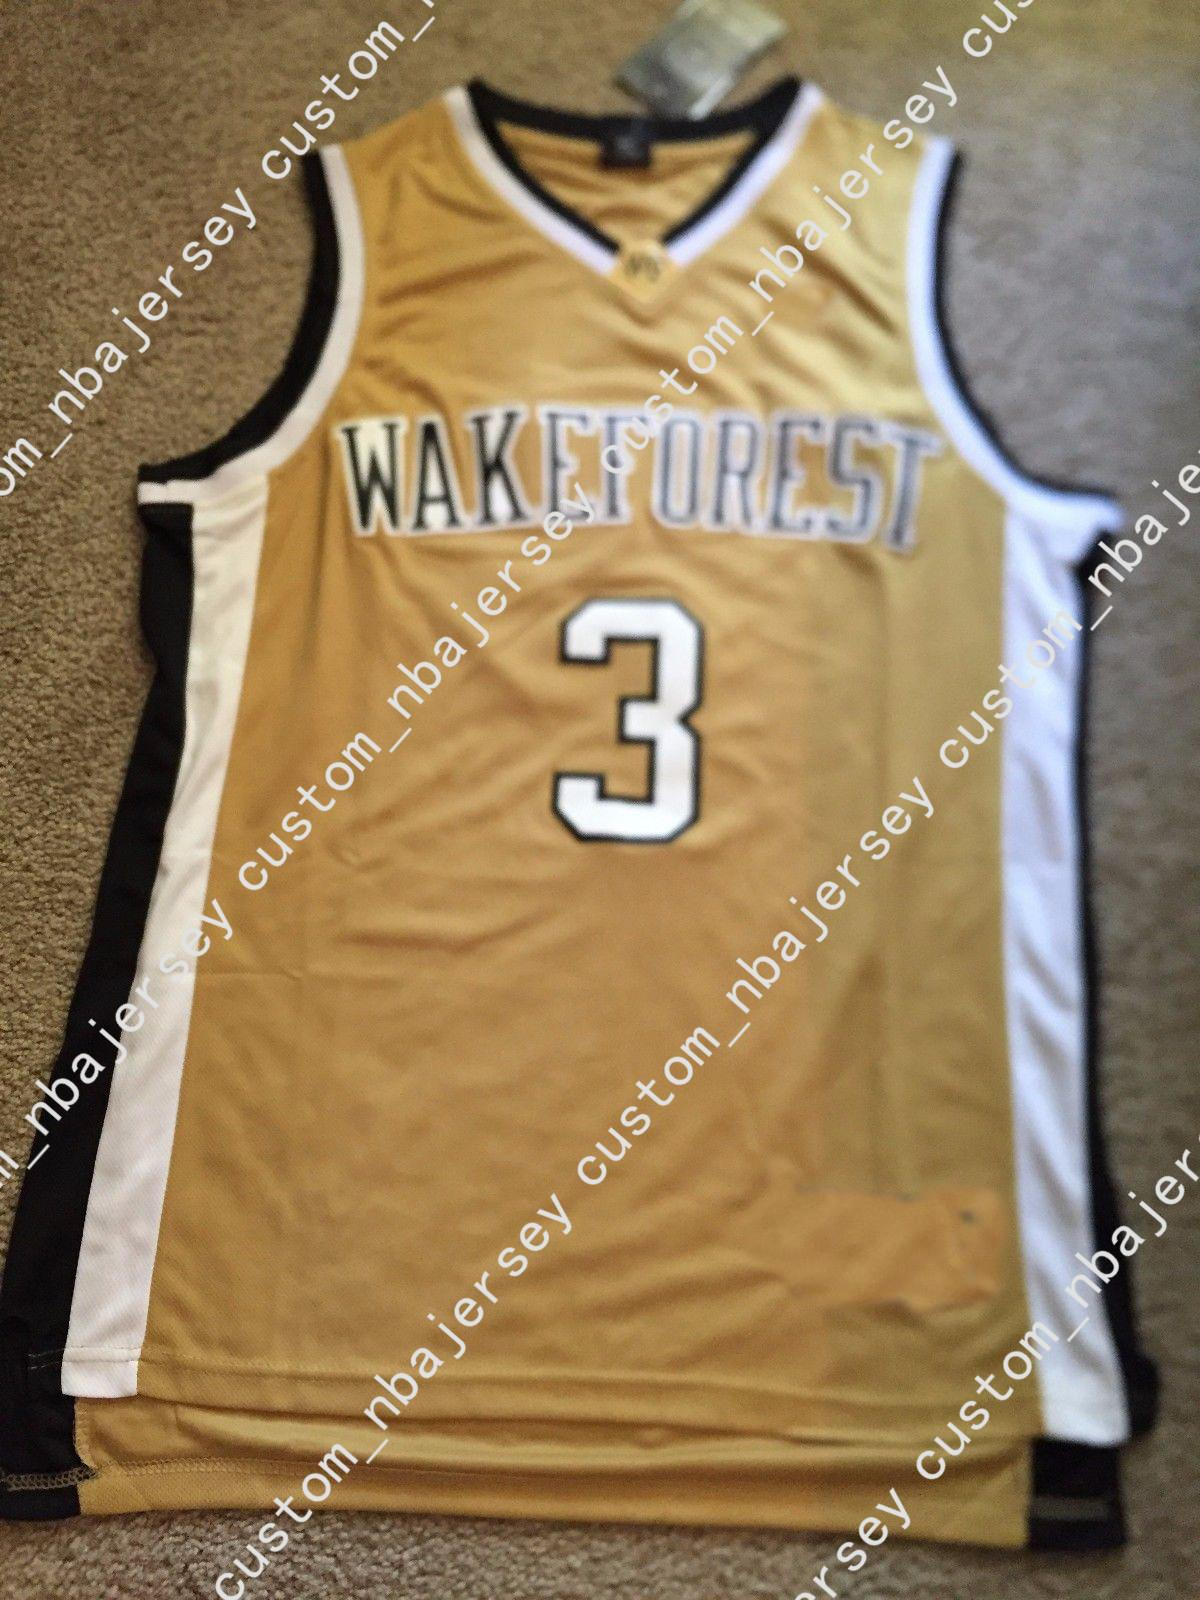 7bb0bef96 2019 Cheap Custom Vintage Chris Paul Wake Forest Demon Deacons NCAA  Basketball Jersey Stitched Customize Any Number Name MEN WOMEN YOUTH XS 5XL  From ...